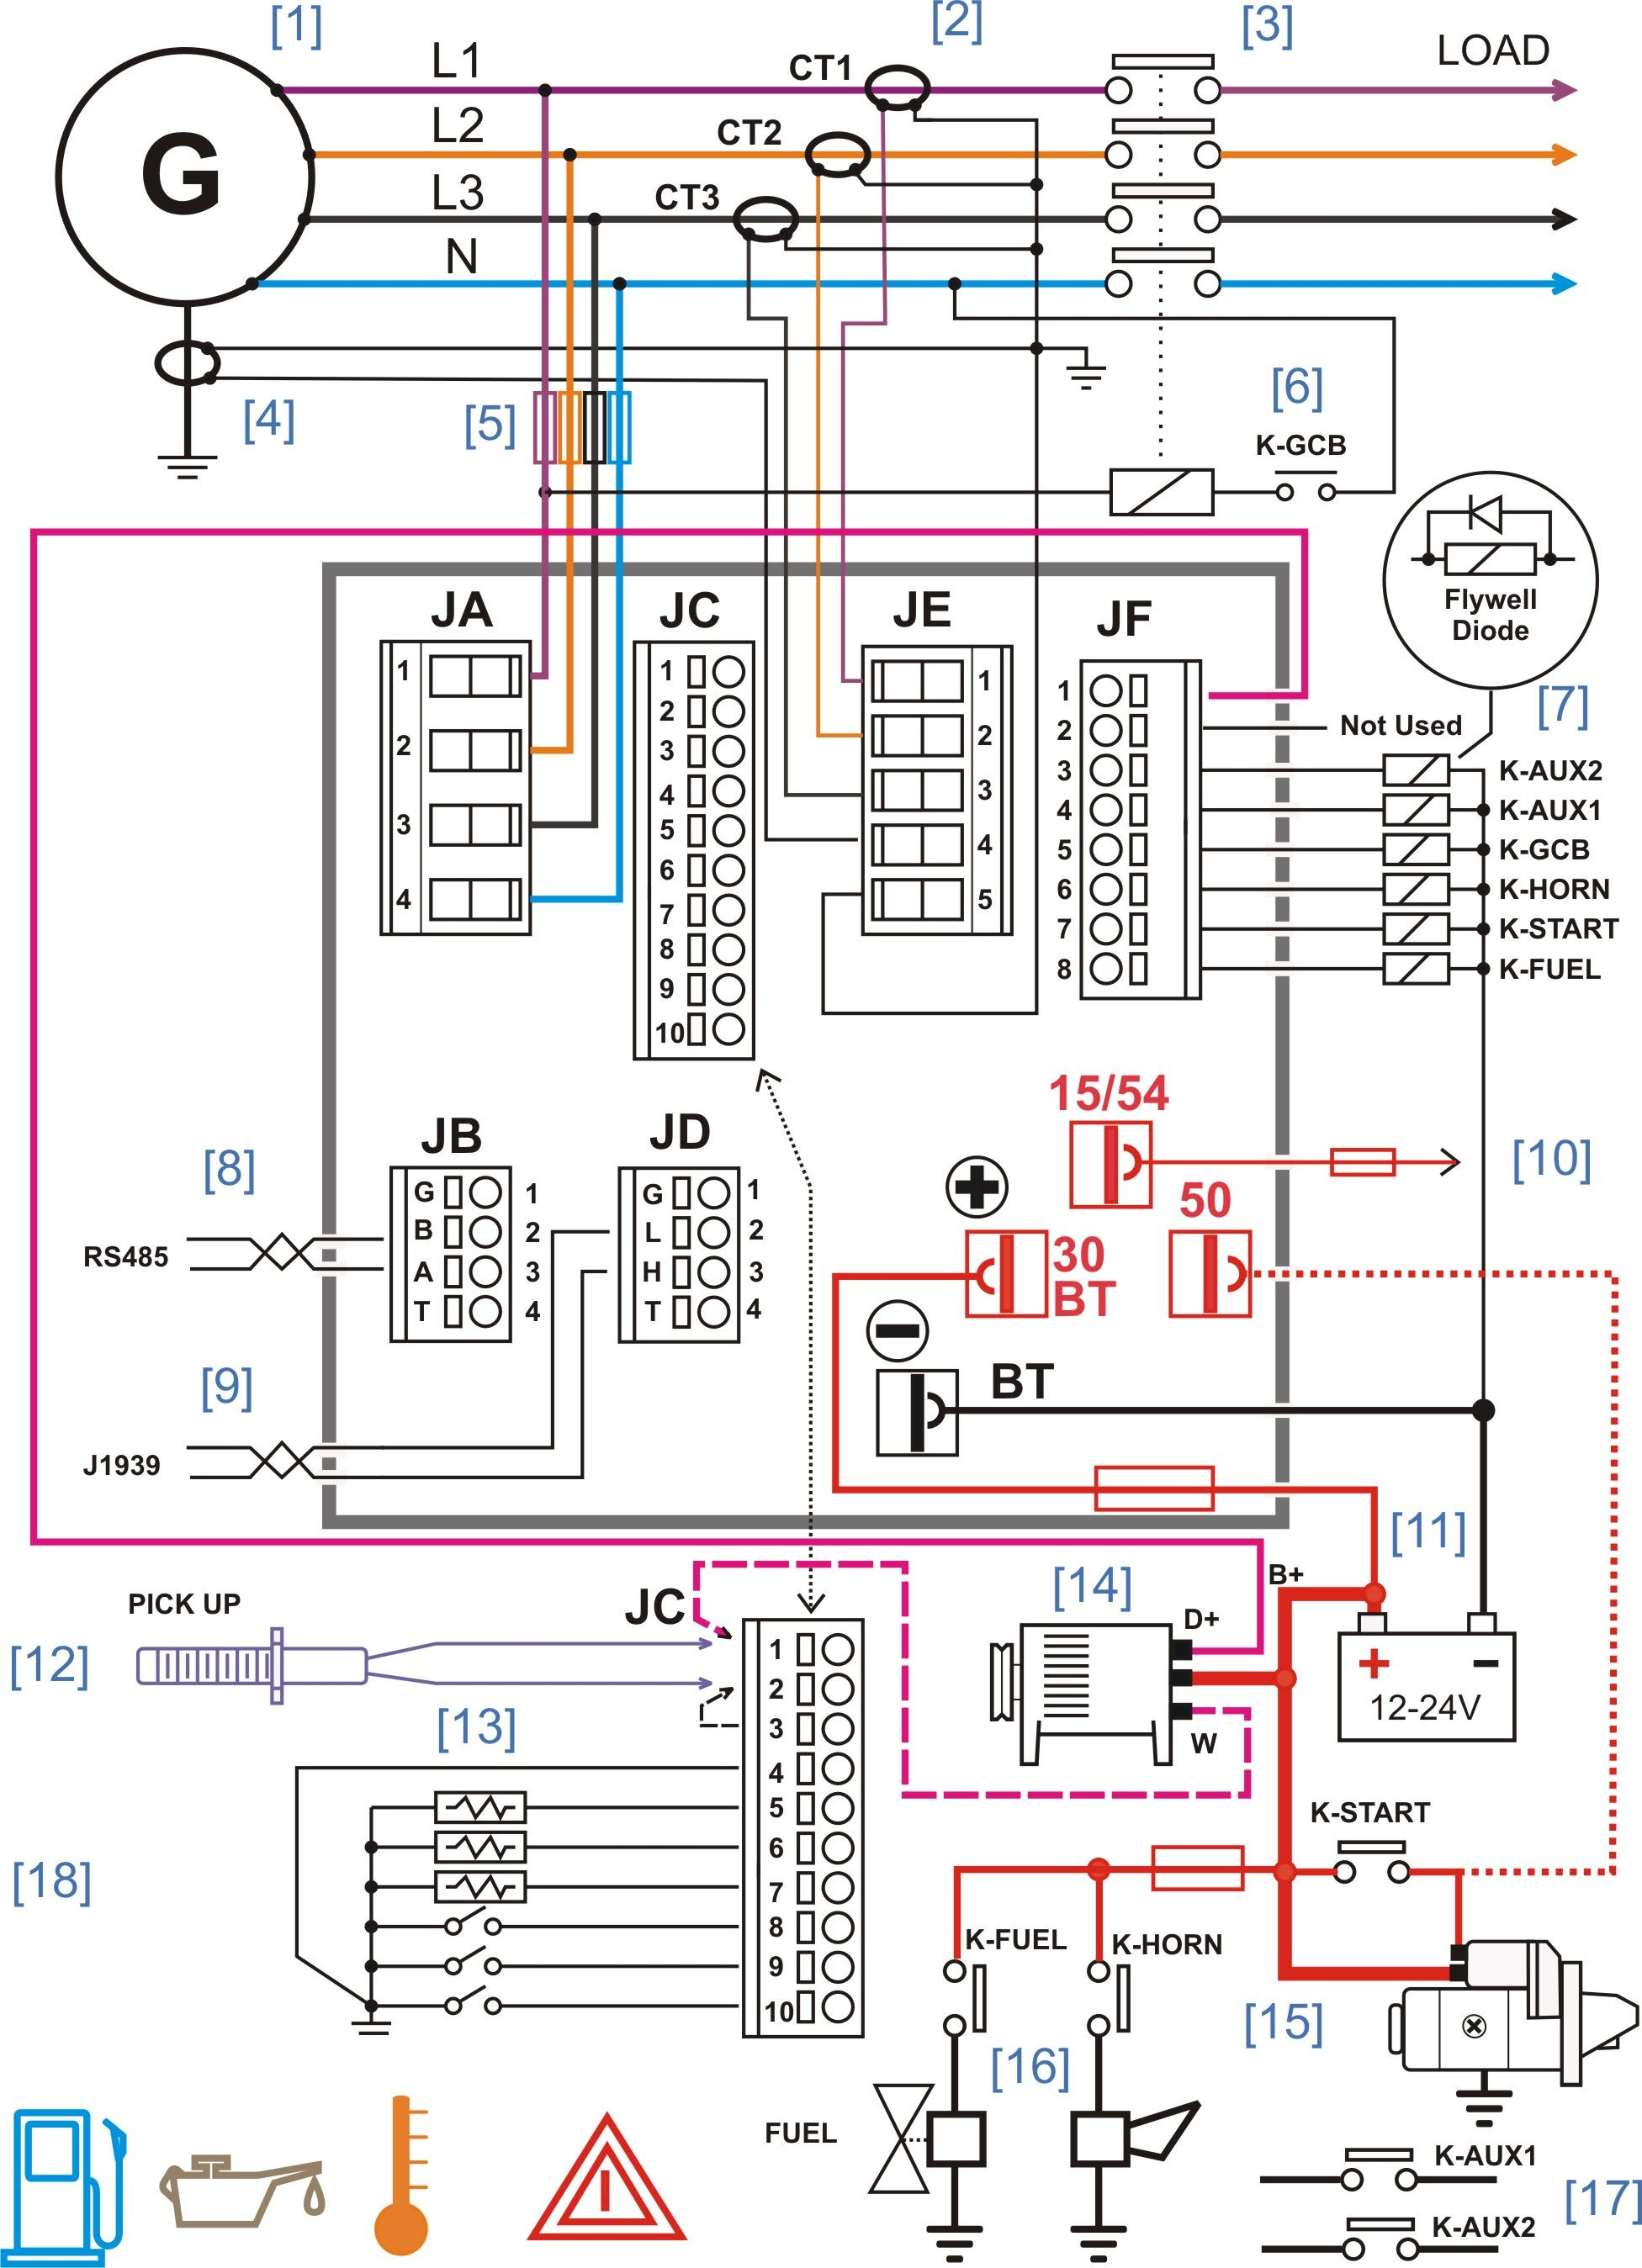 diesel generator control panel wiring diagram diesel generators rh pinterest com pump control panel wiring diagram control panel wiring diagram